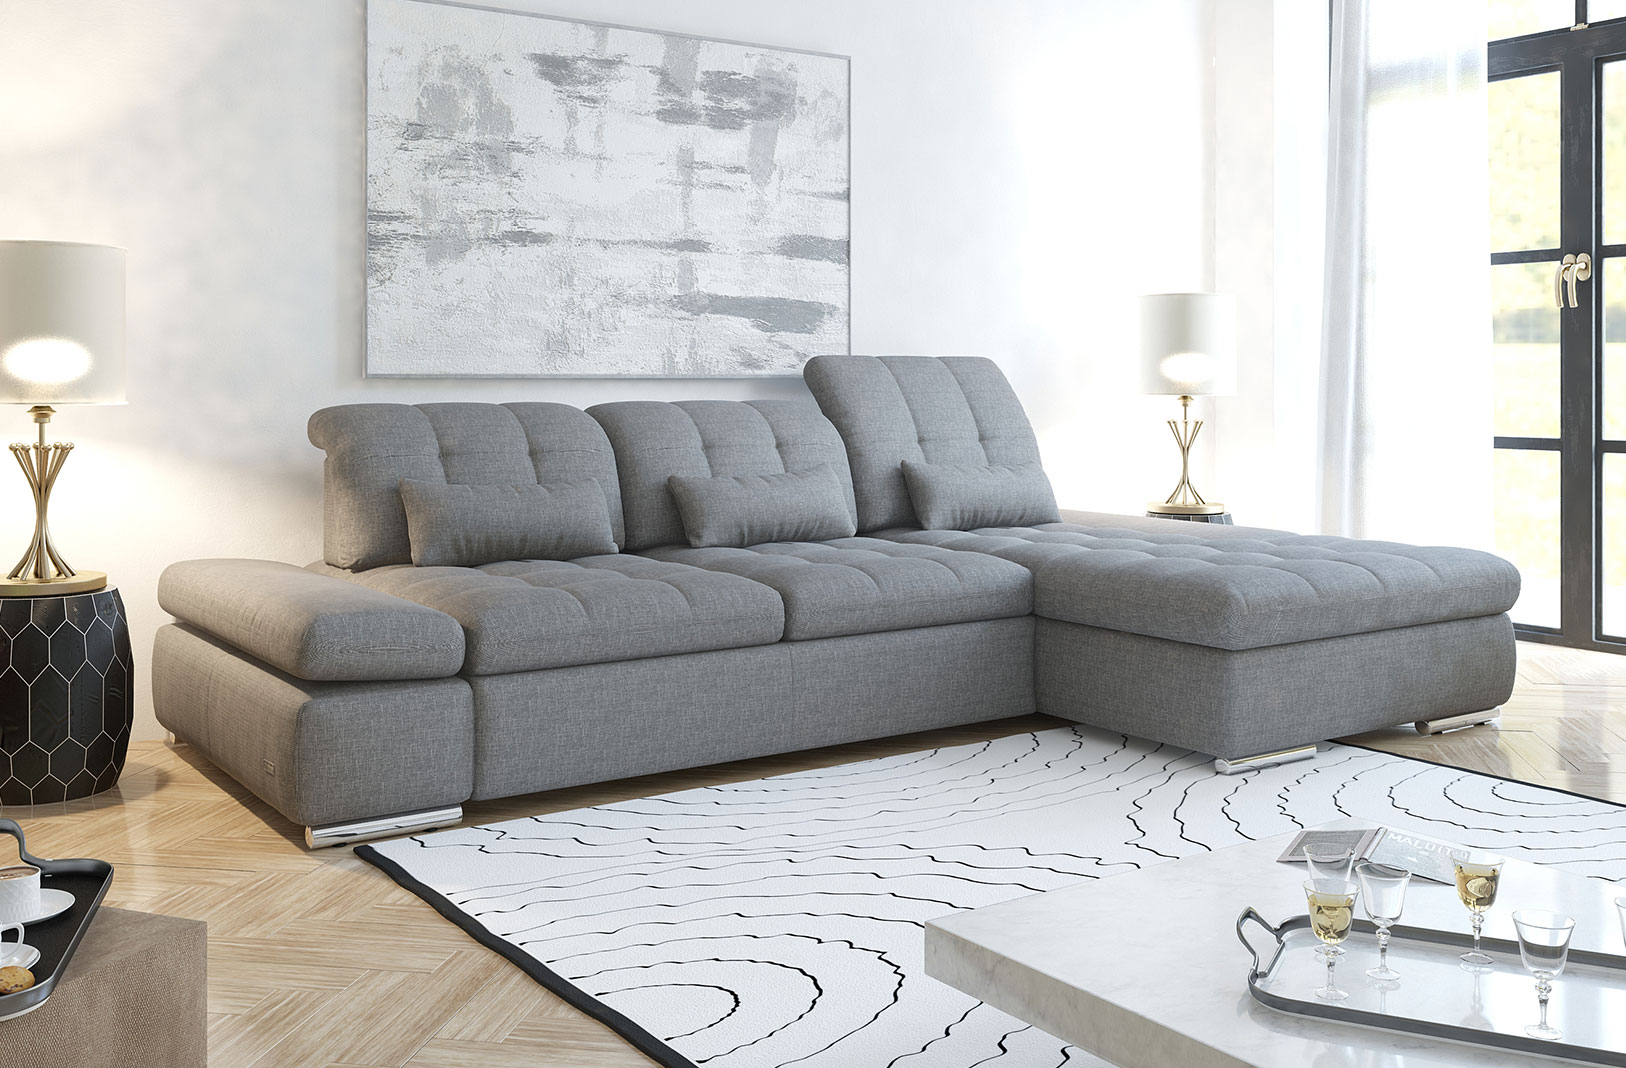 Alpine Sectional Sofa Bed and Storage - photo №13